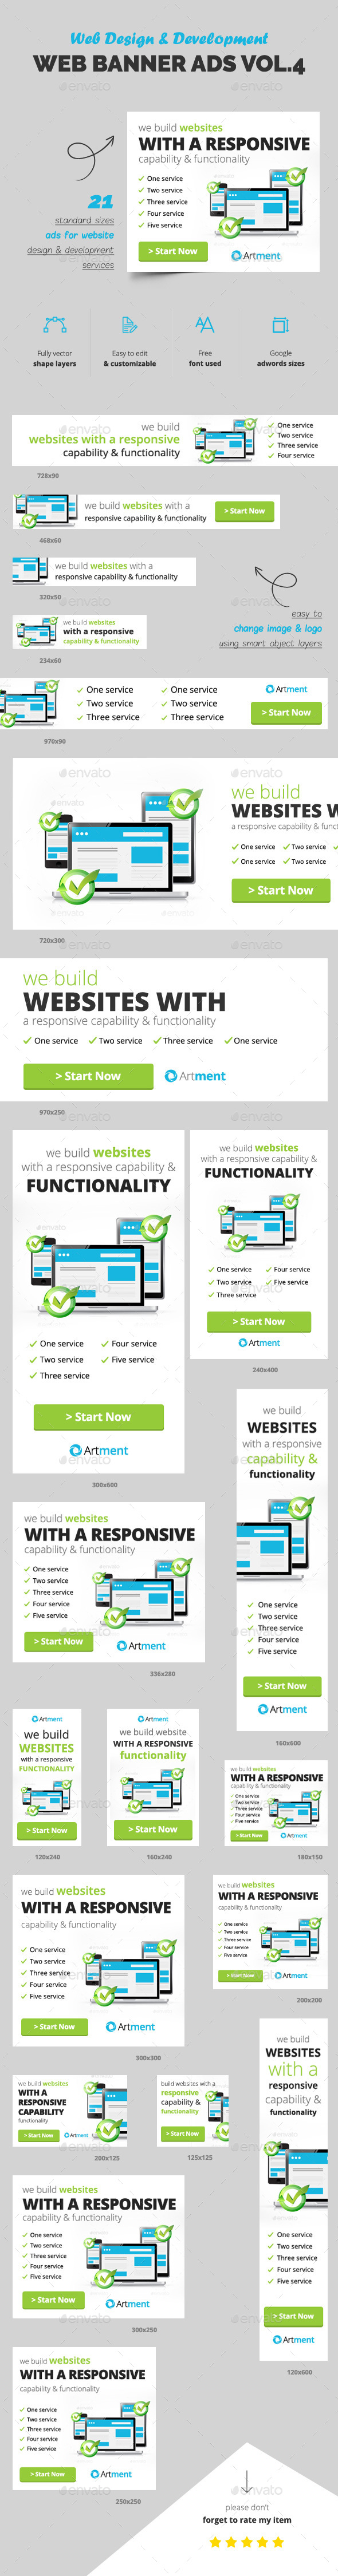 Web Design Banner Ads Vol.4 - Banners & Ads Web Elements